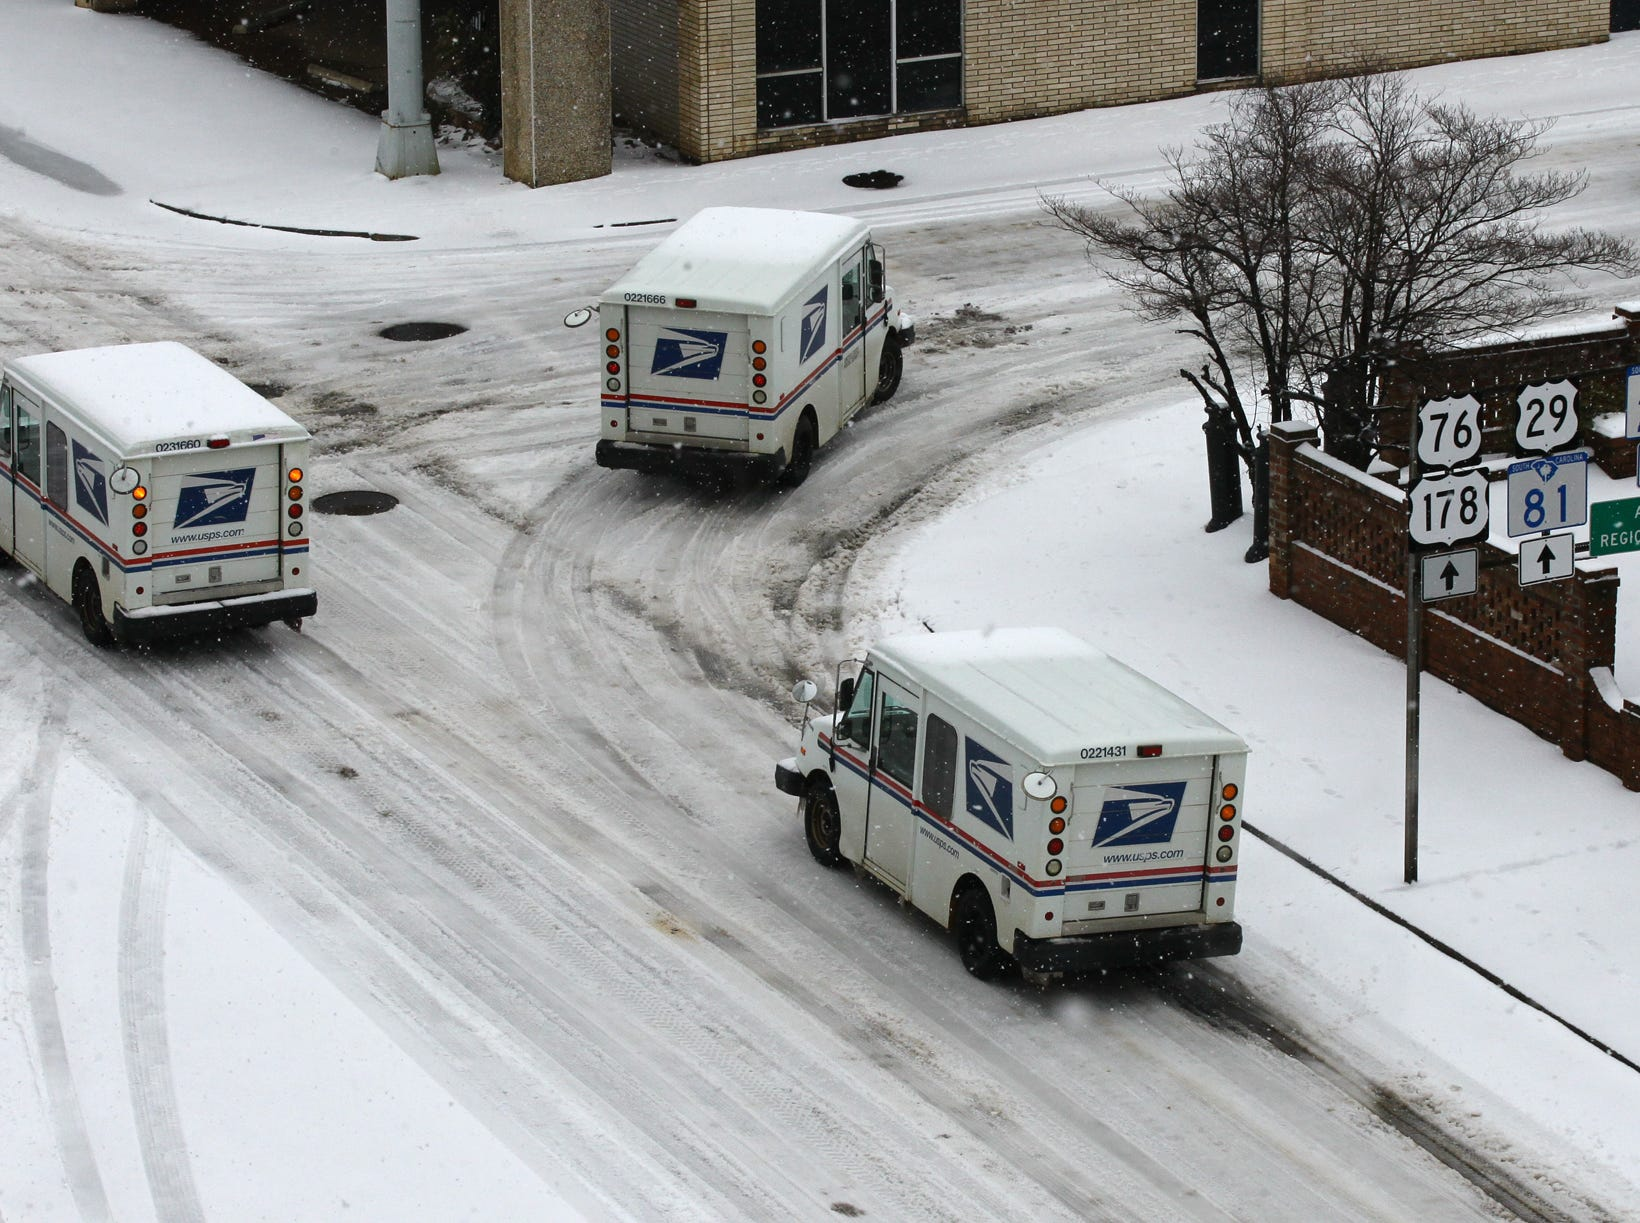 United States Post Office mail workers deliver mail despite the snow covered roads in Andersonduring the first snow of 2014.